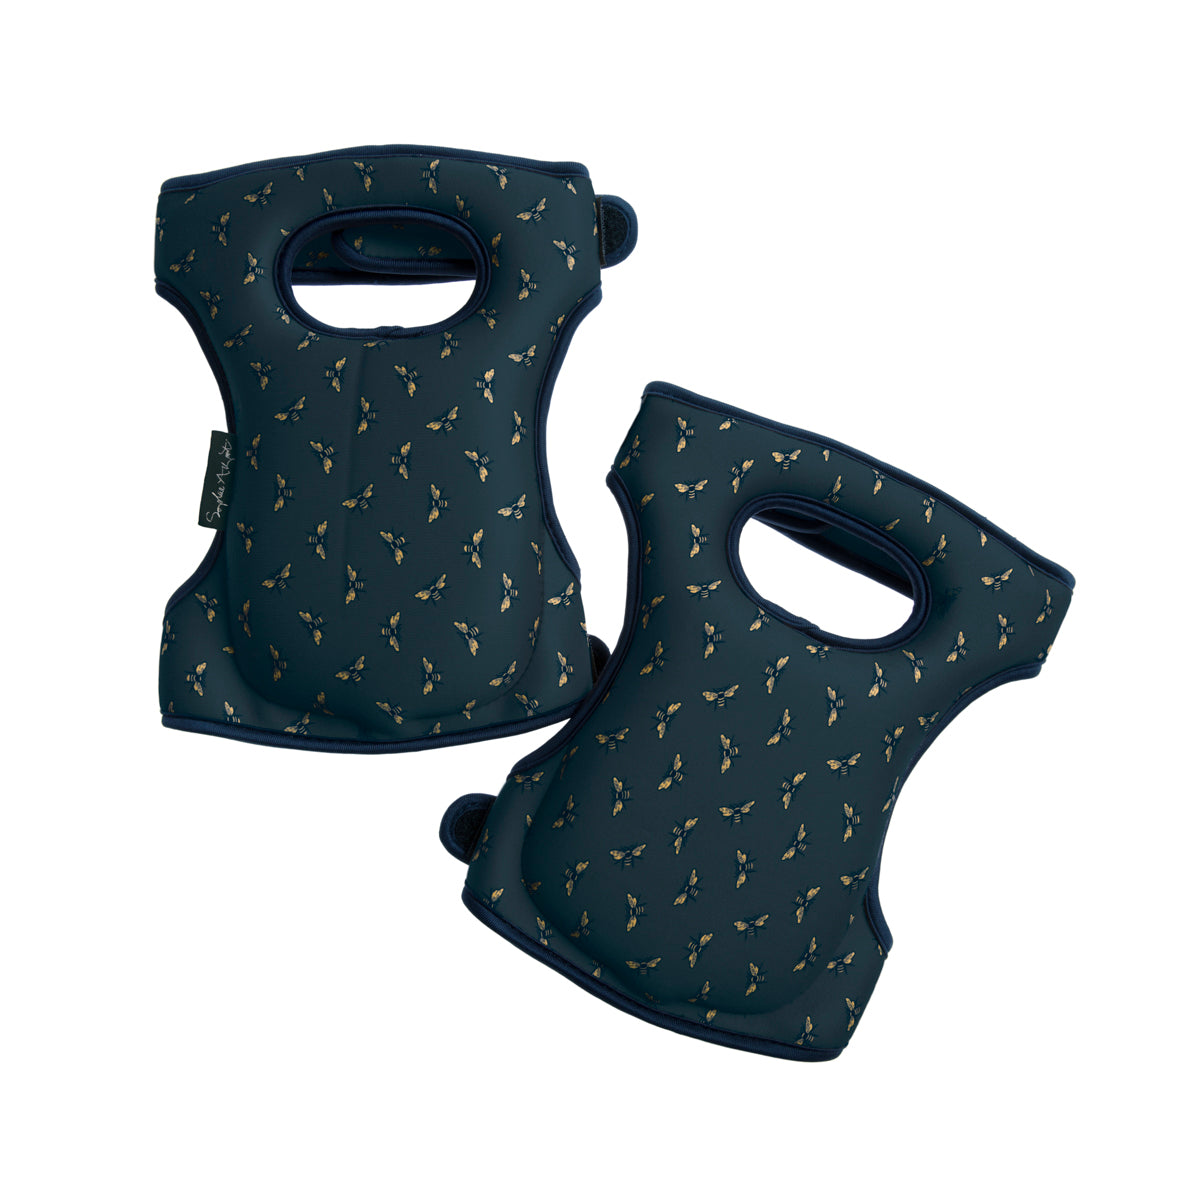 Bees Gardening Knee Pads by Sophie Allport